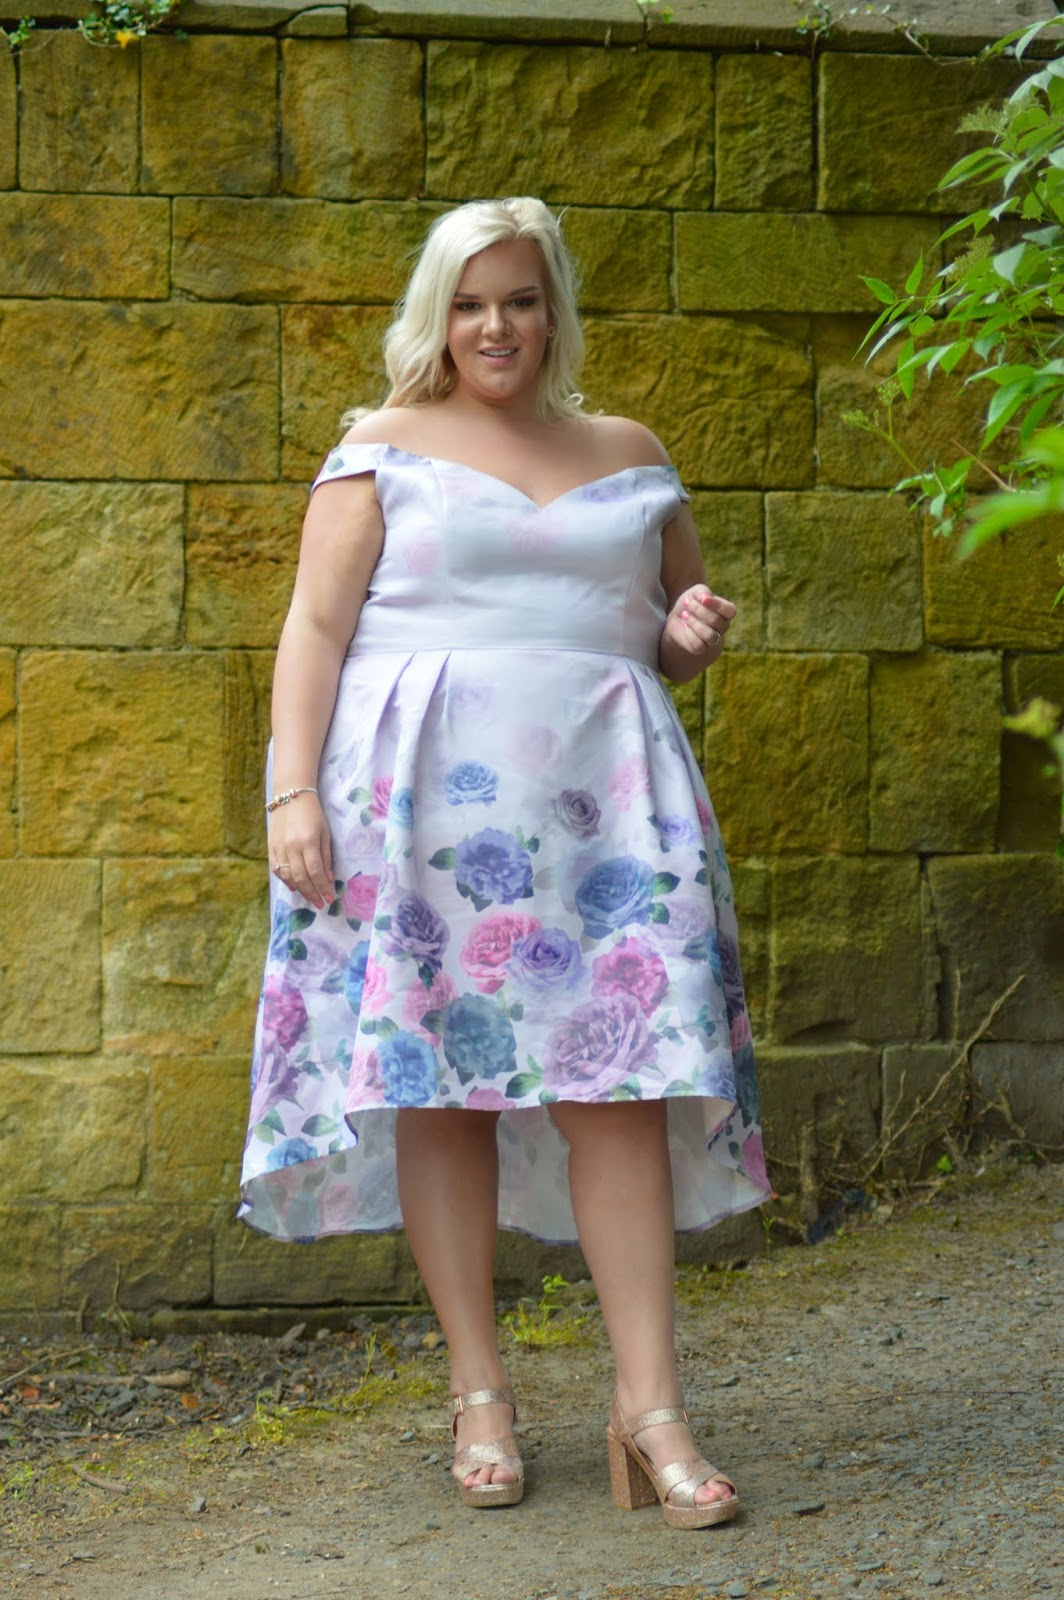 UK Plus Size Blogger WhatLauraLoves wearing Chi Chi London Curve Clothing Janine Dress